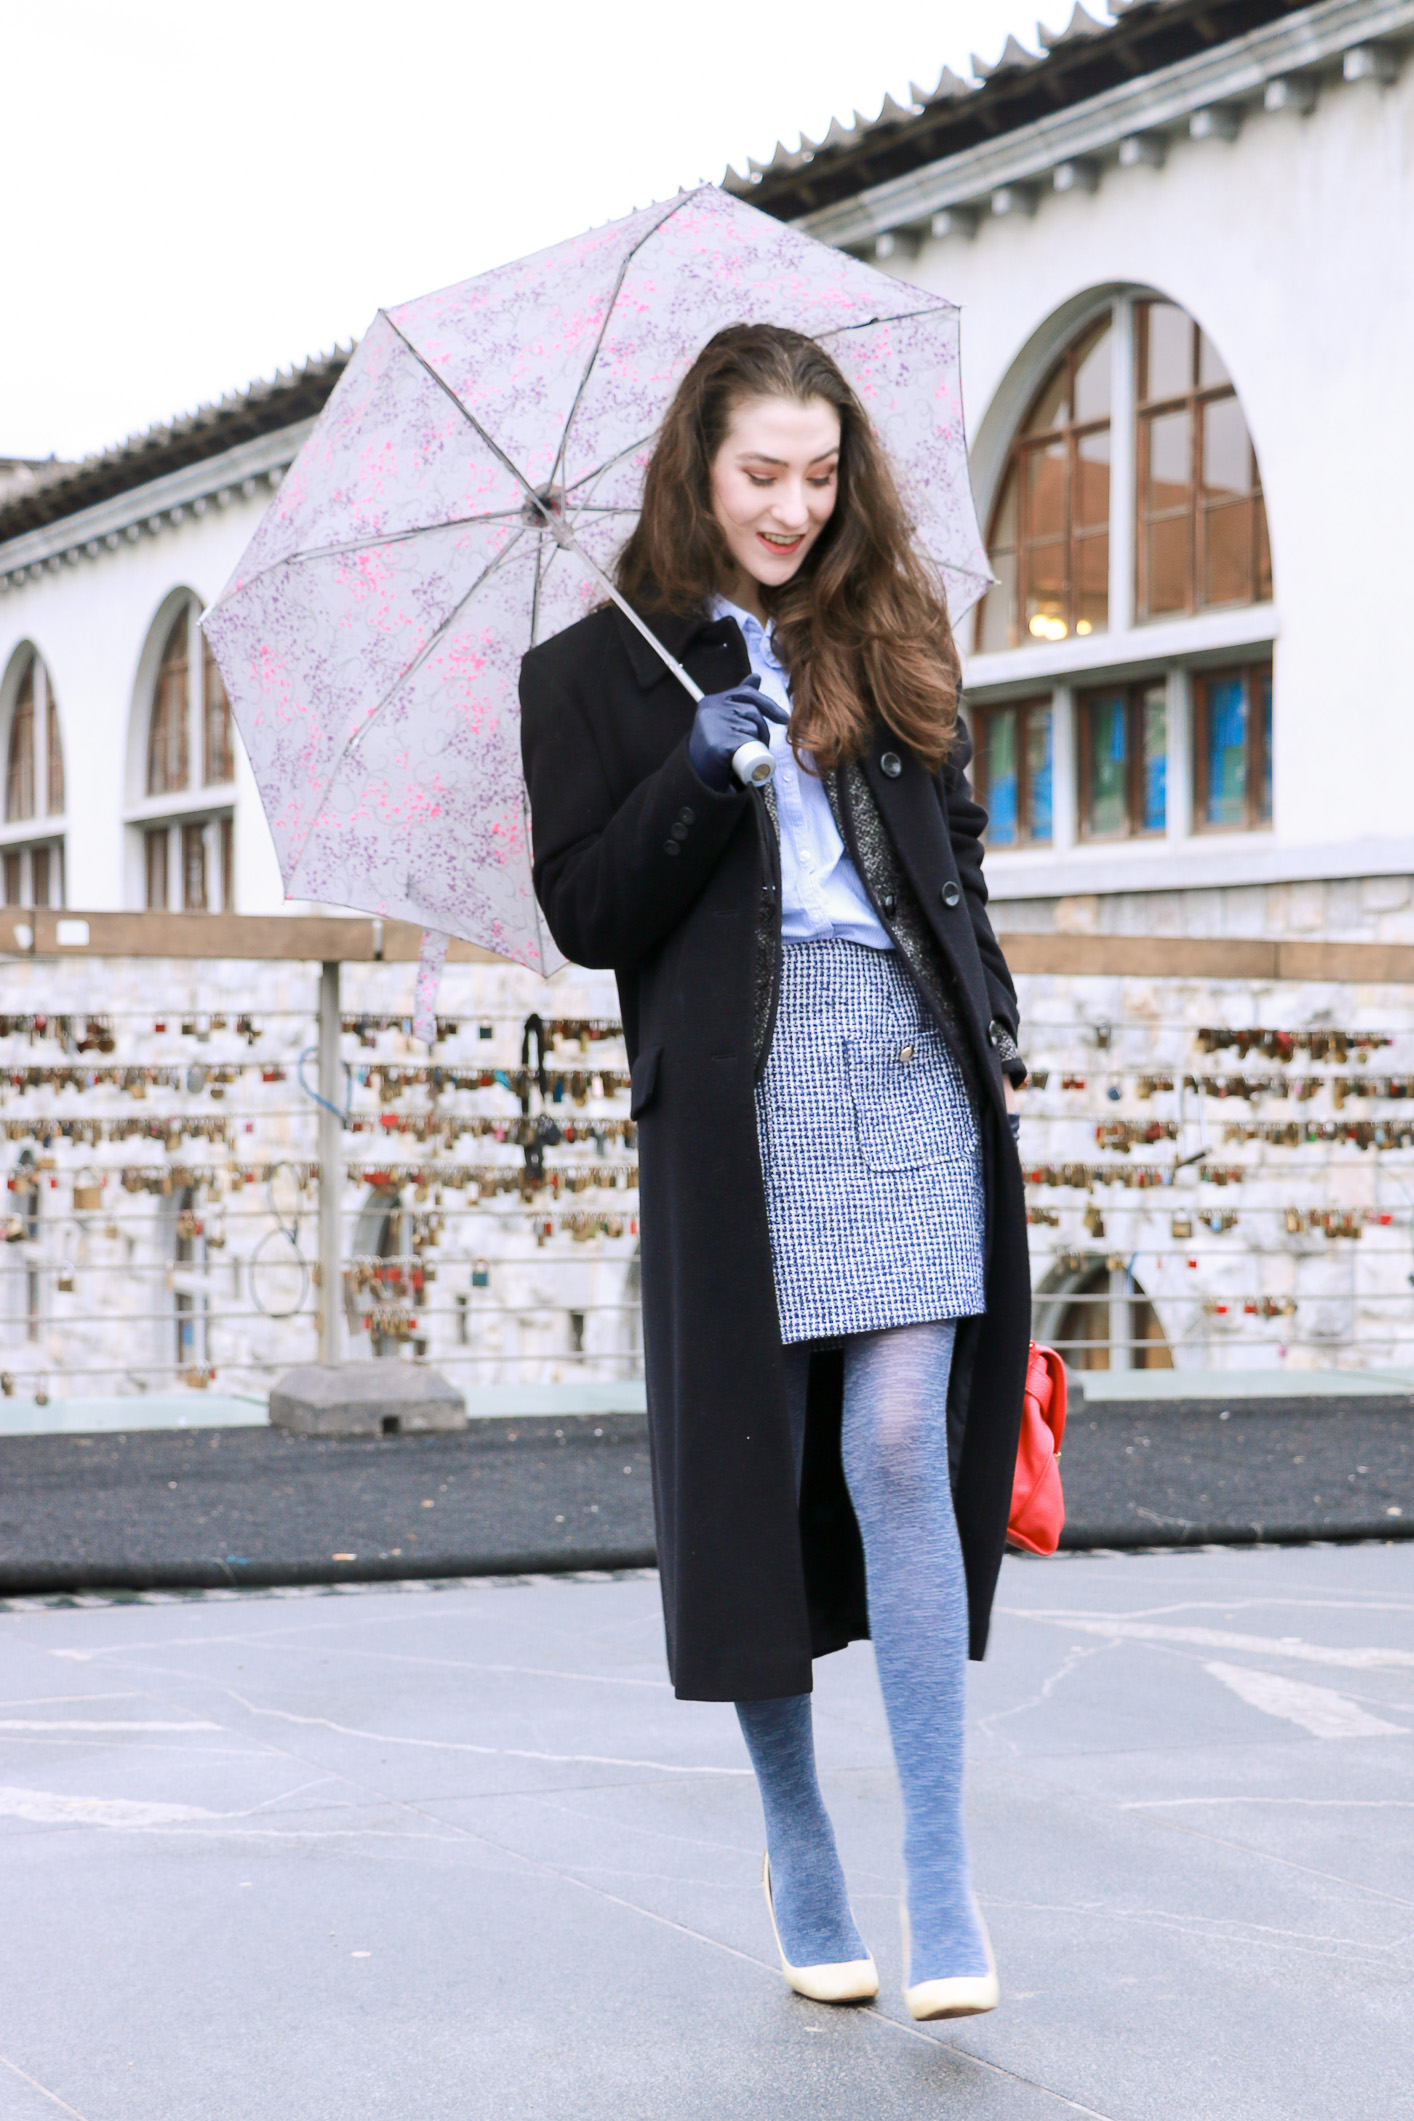 Fashion blogger Veronika Lipar of Brunette From Wall Street sharing how to wear the white shoes as a fashionista